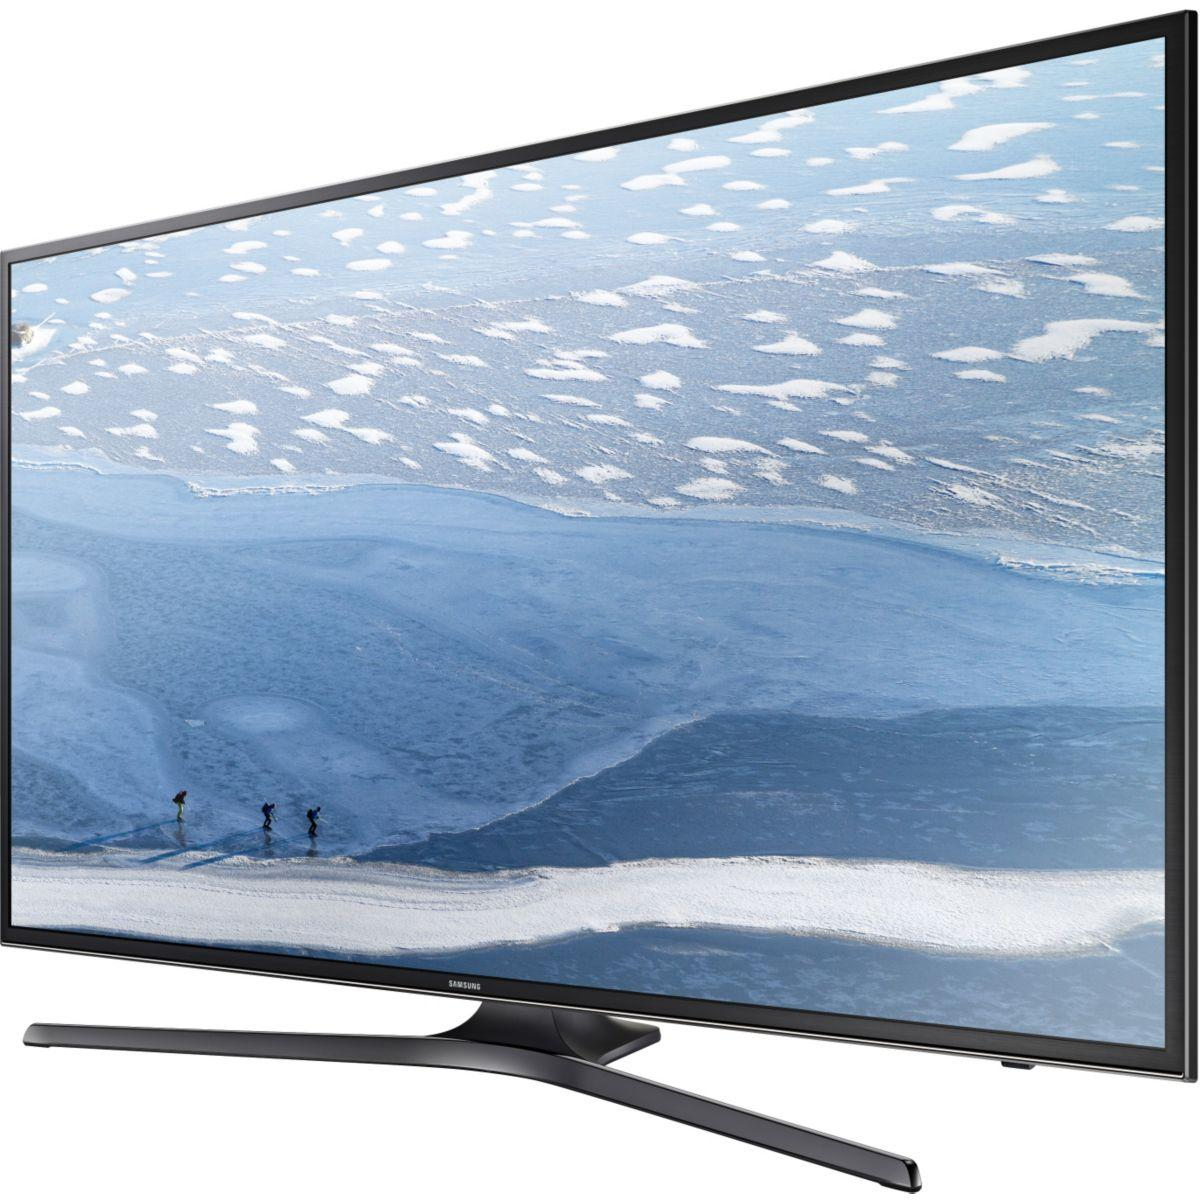 TV SAMSUNG UE60KU6000 4K HDR 1300 PQI SMART TV